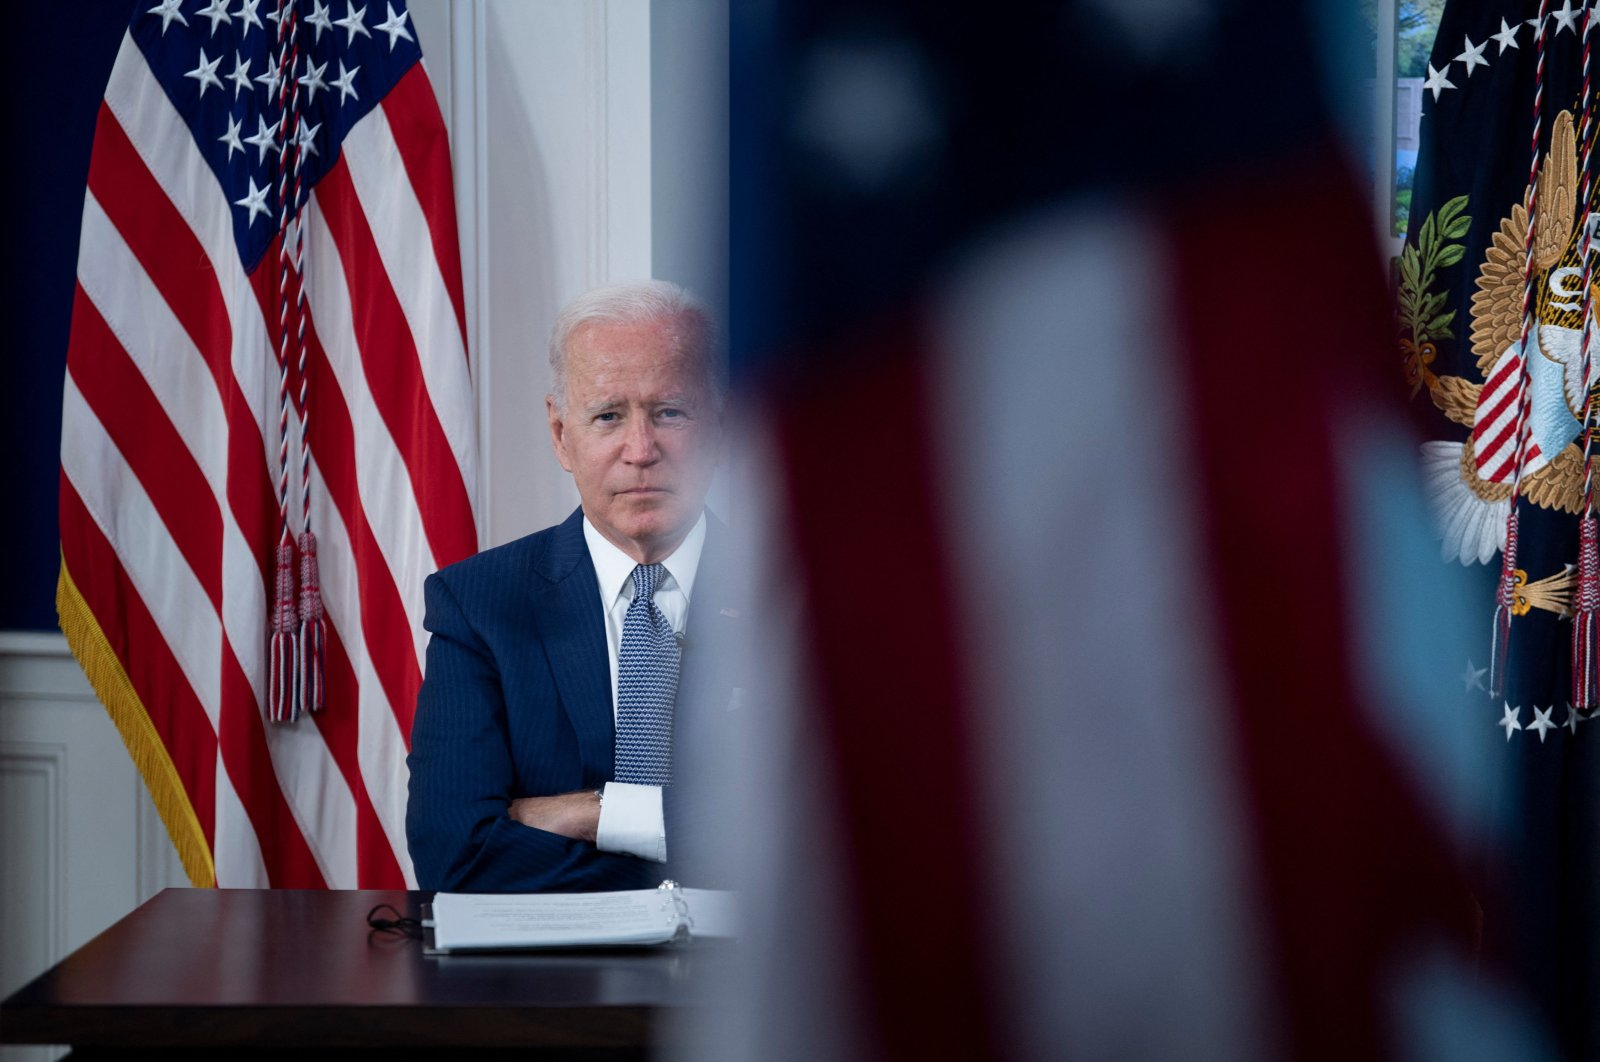 U.S. President Joe Biden convenes a virtual COVID-19 summit on the sidelines of the U.N. General Assembly from the South Court Auditorium of the White House in Washington, D.C., U.S., Sept. 22, 2021. (AFP Photo)